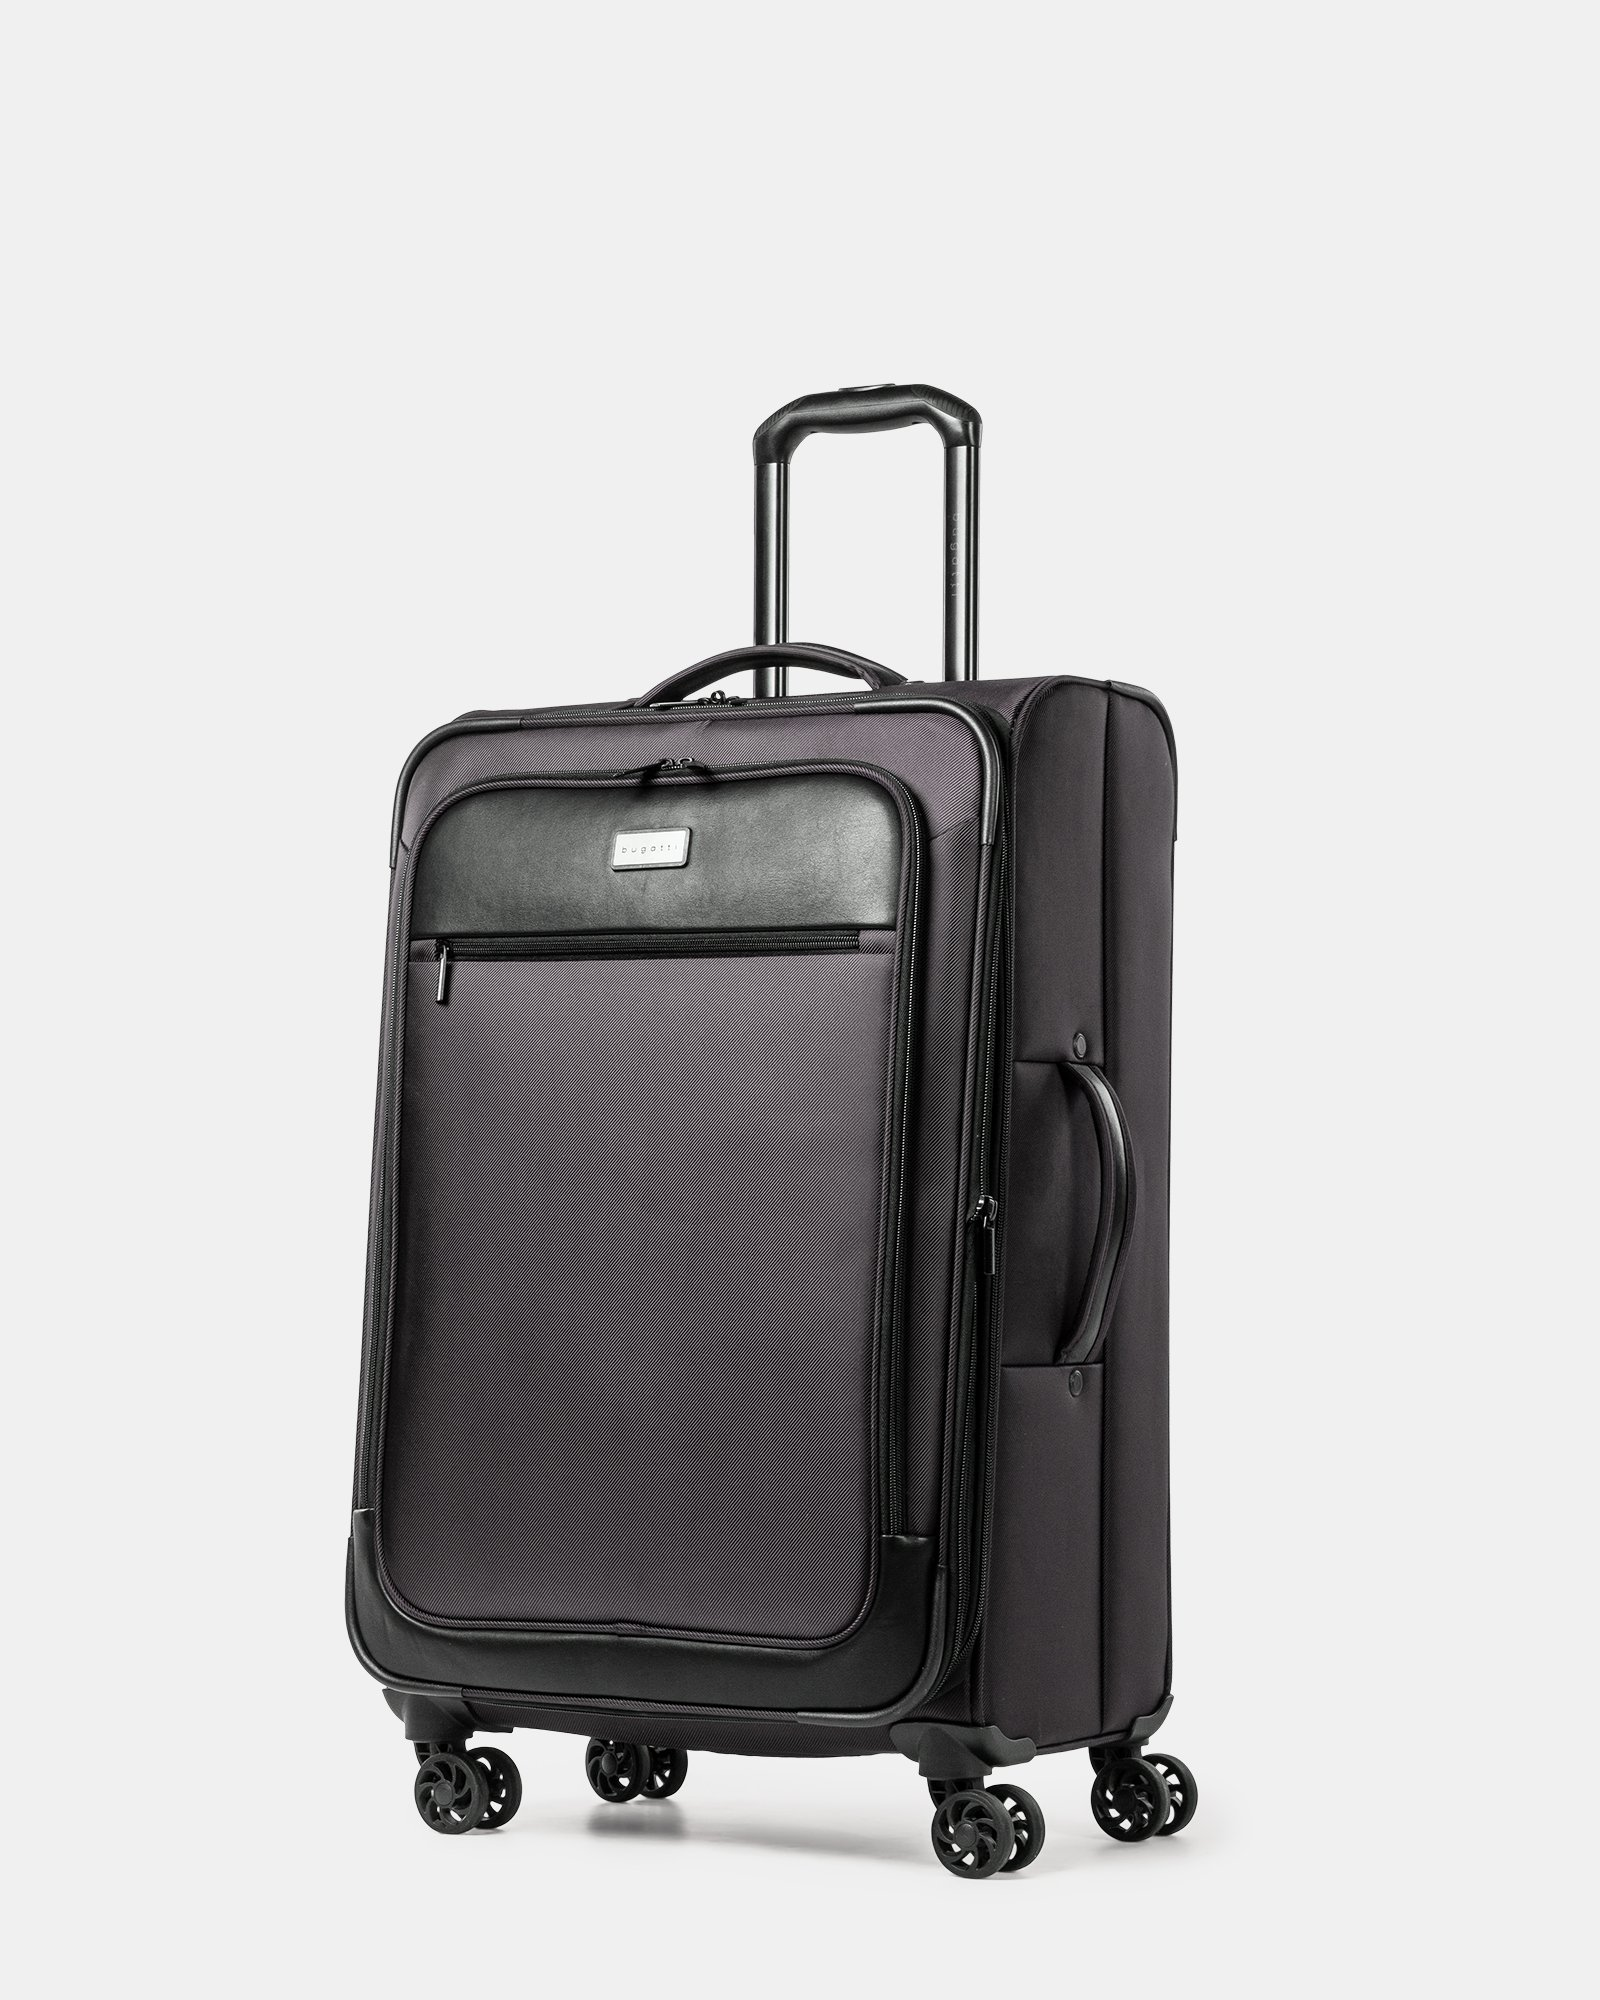 Boston - Lightweight Softside 24'' Luggage with Zipper-release expansion system - Charcoal - Bugatti - Zoom